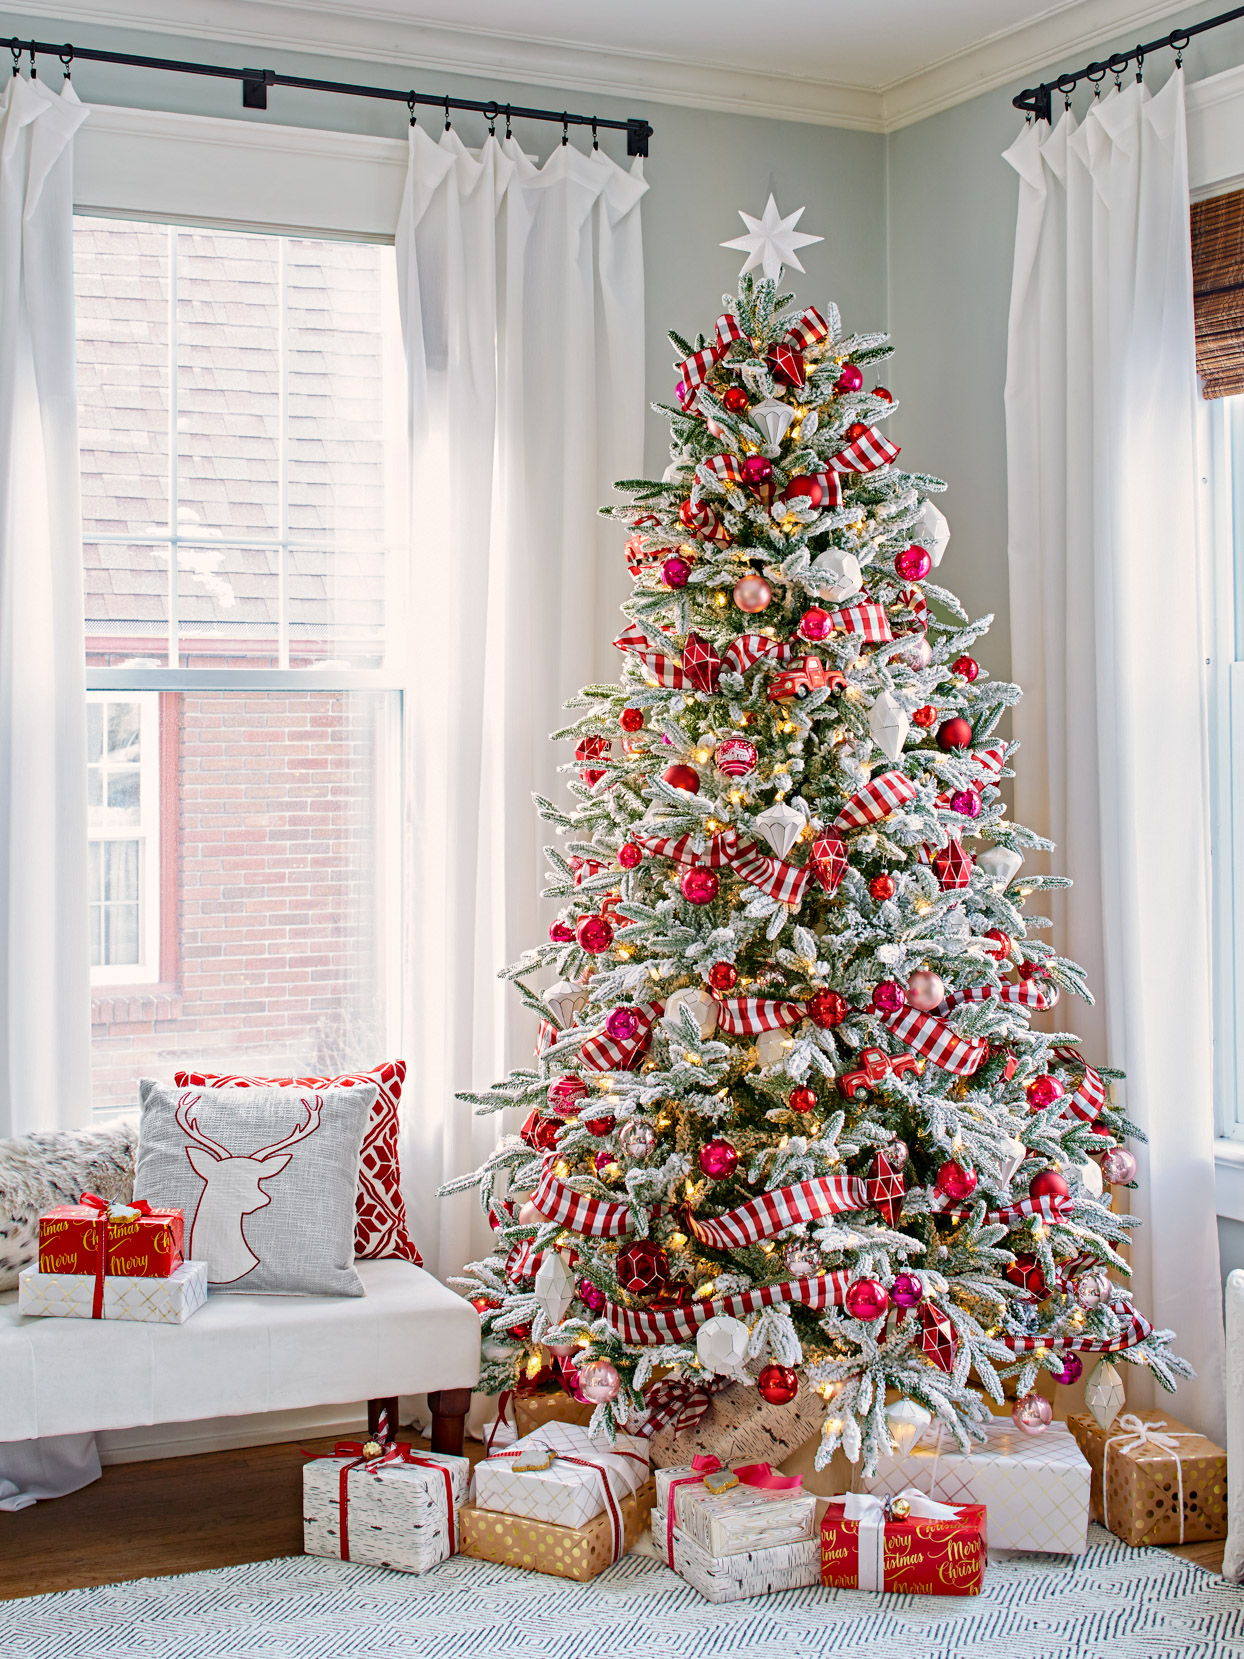 How To Decorate A Christmas Tree In 3 Easy Steps Better Homes Gardens